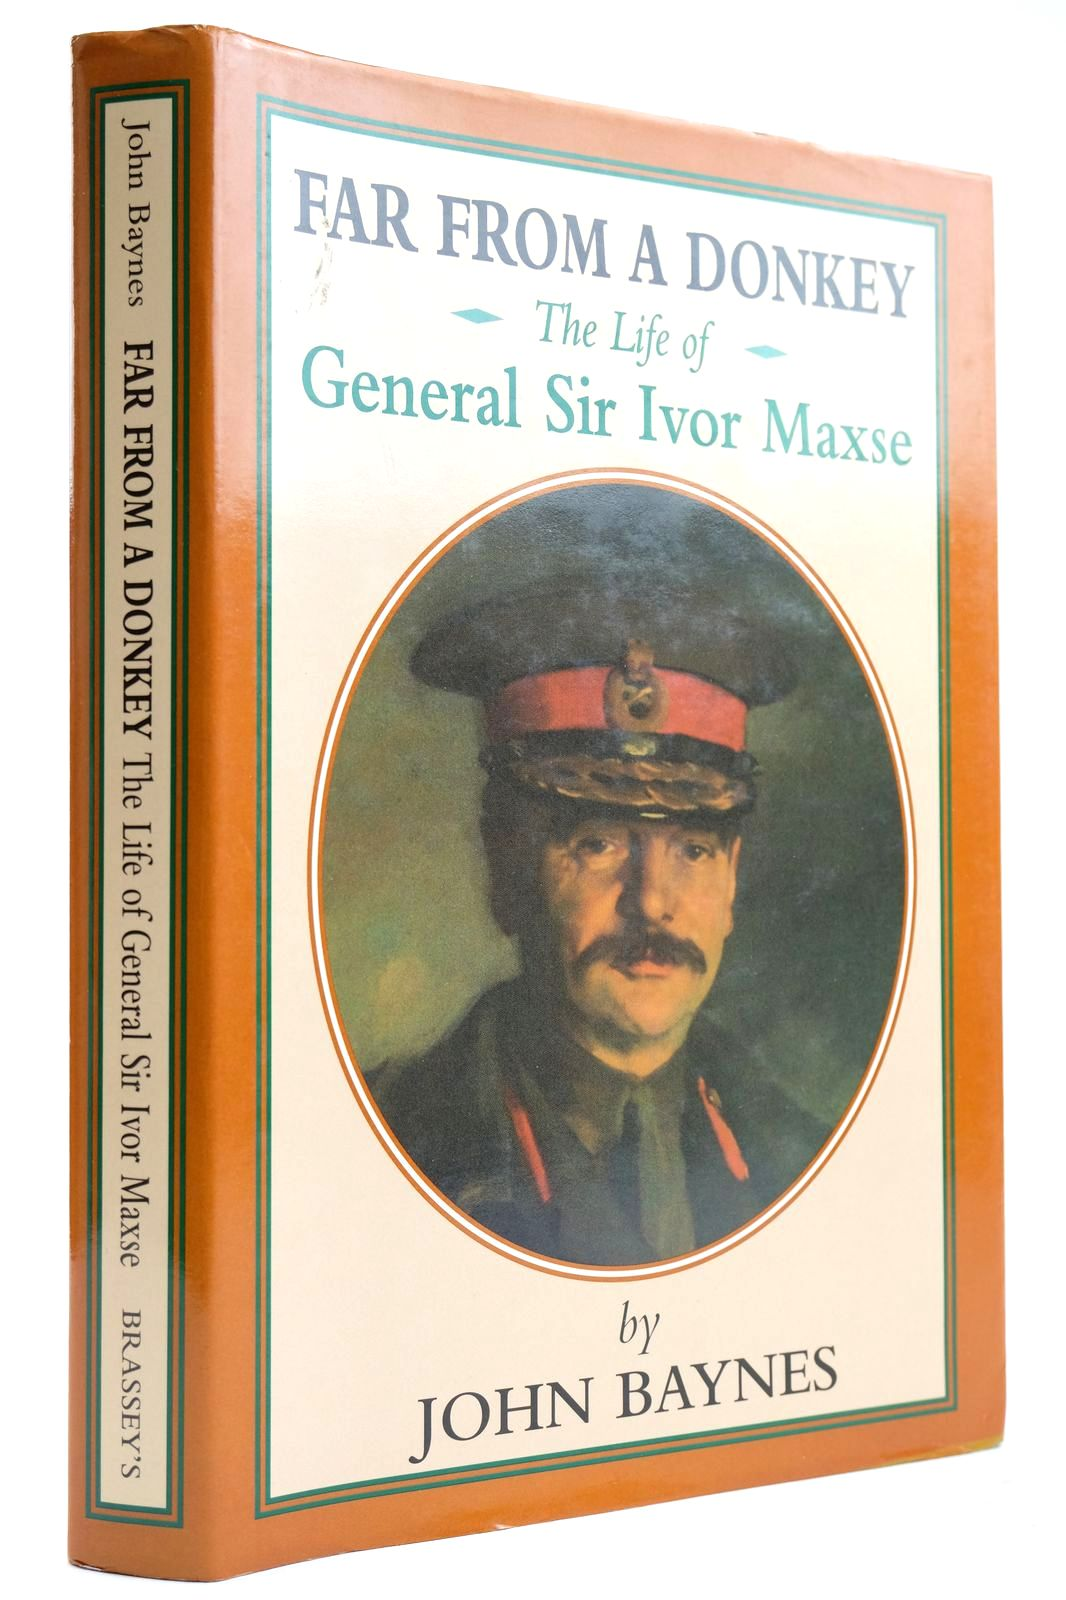 Photo of FAR FROM A DONKEY THE LIFE OF GENERAL SIR IVOR MAXSE- Stock Number: 2132653